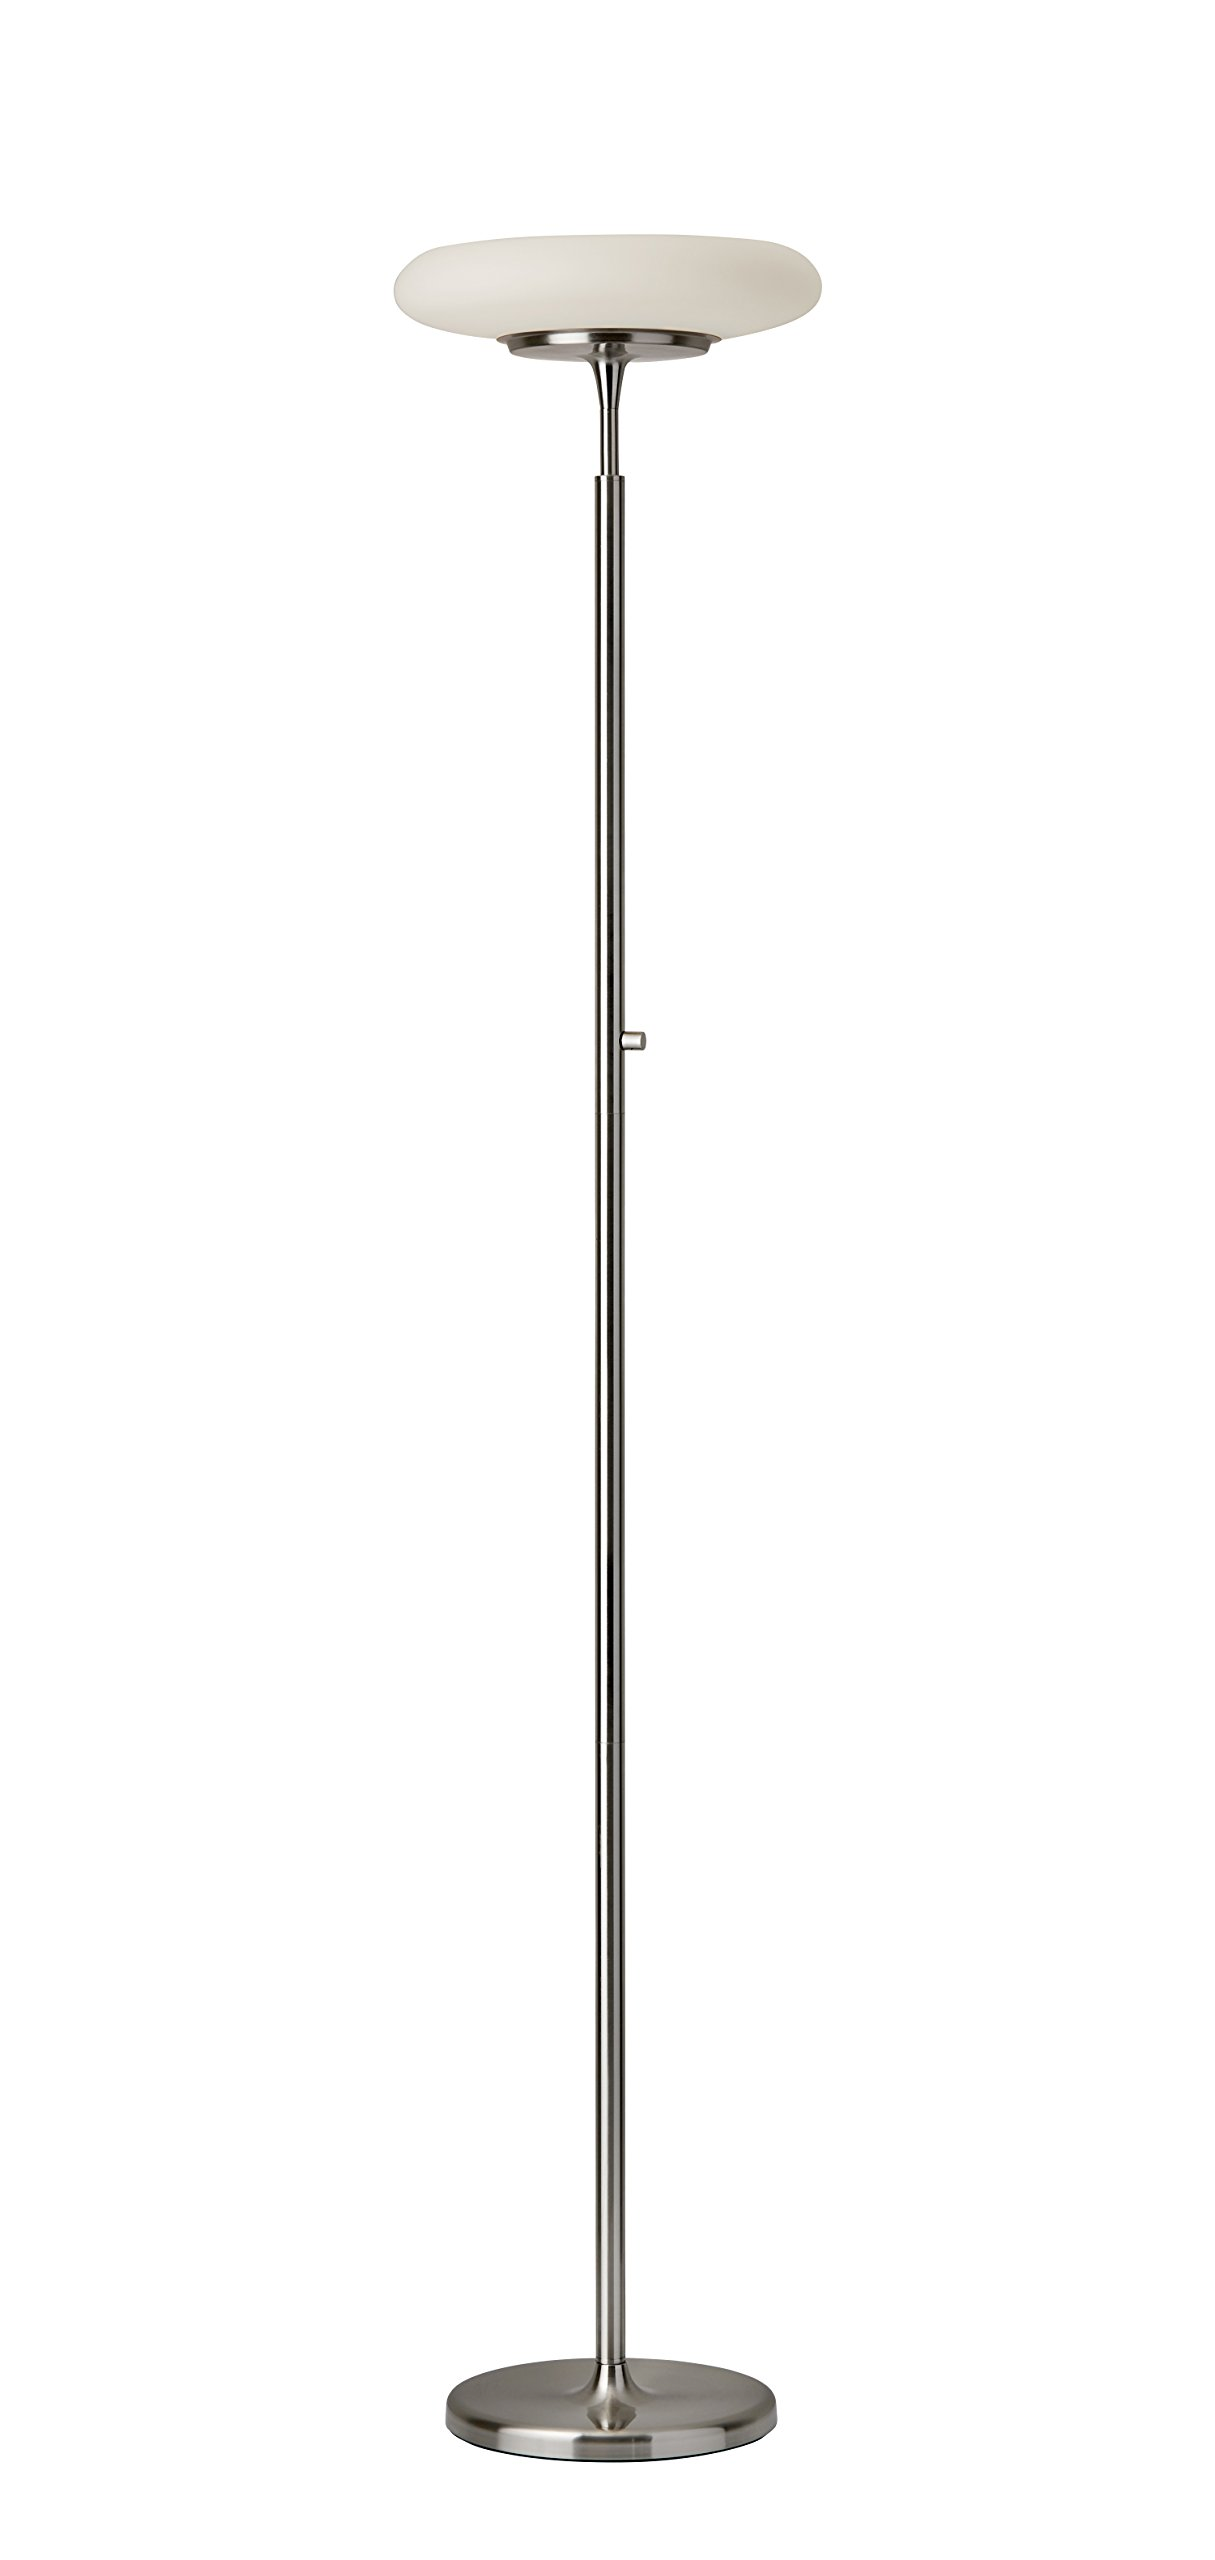 Adesso 3685-22 Hubble LED Torchiere